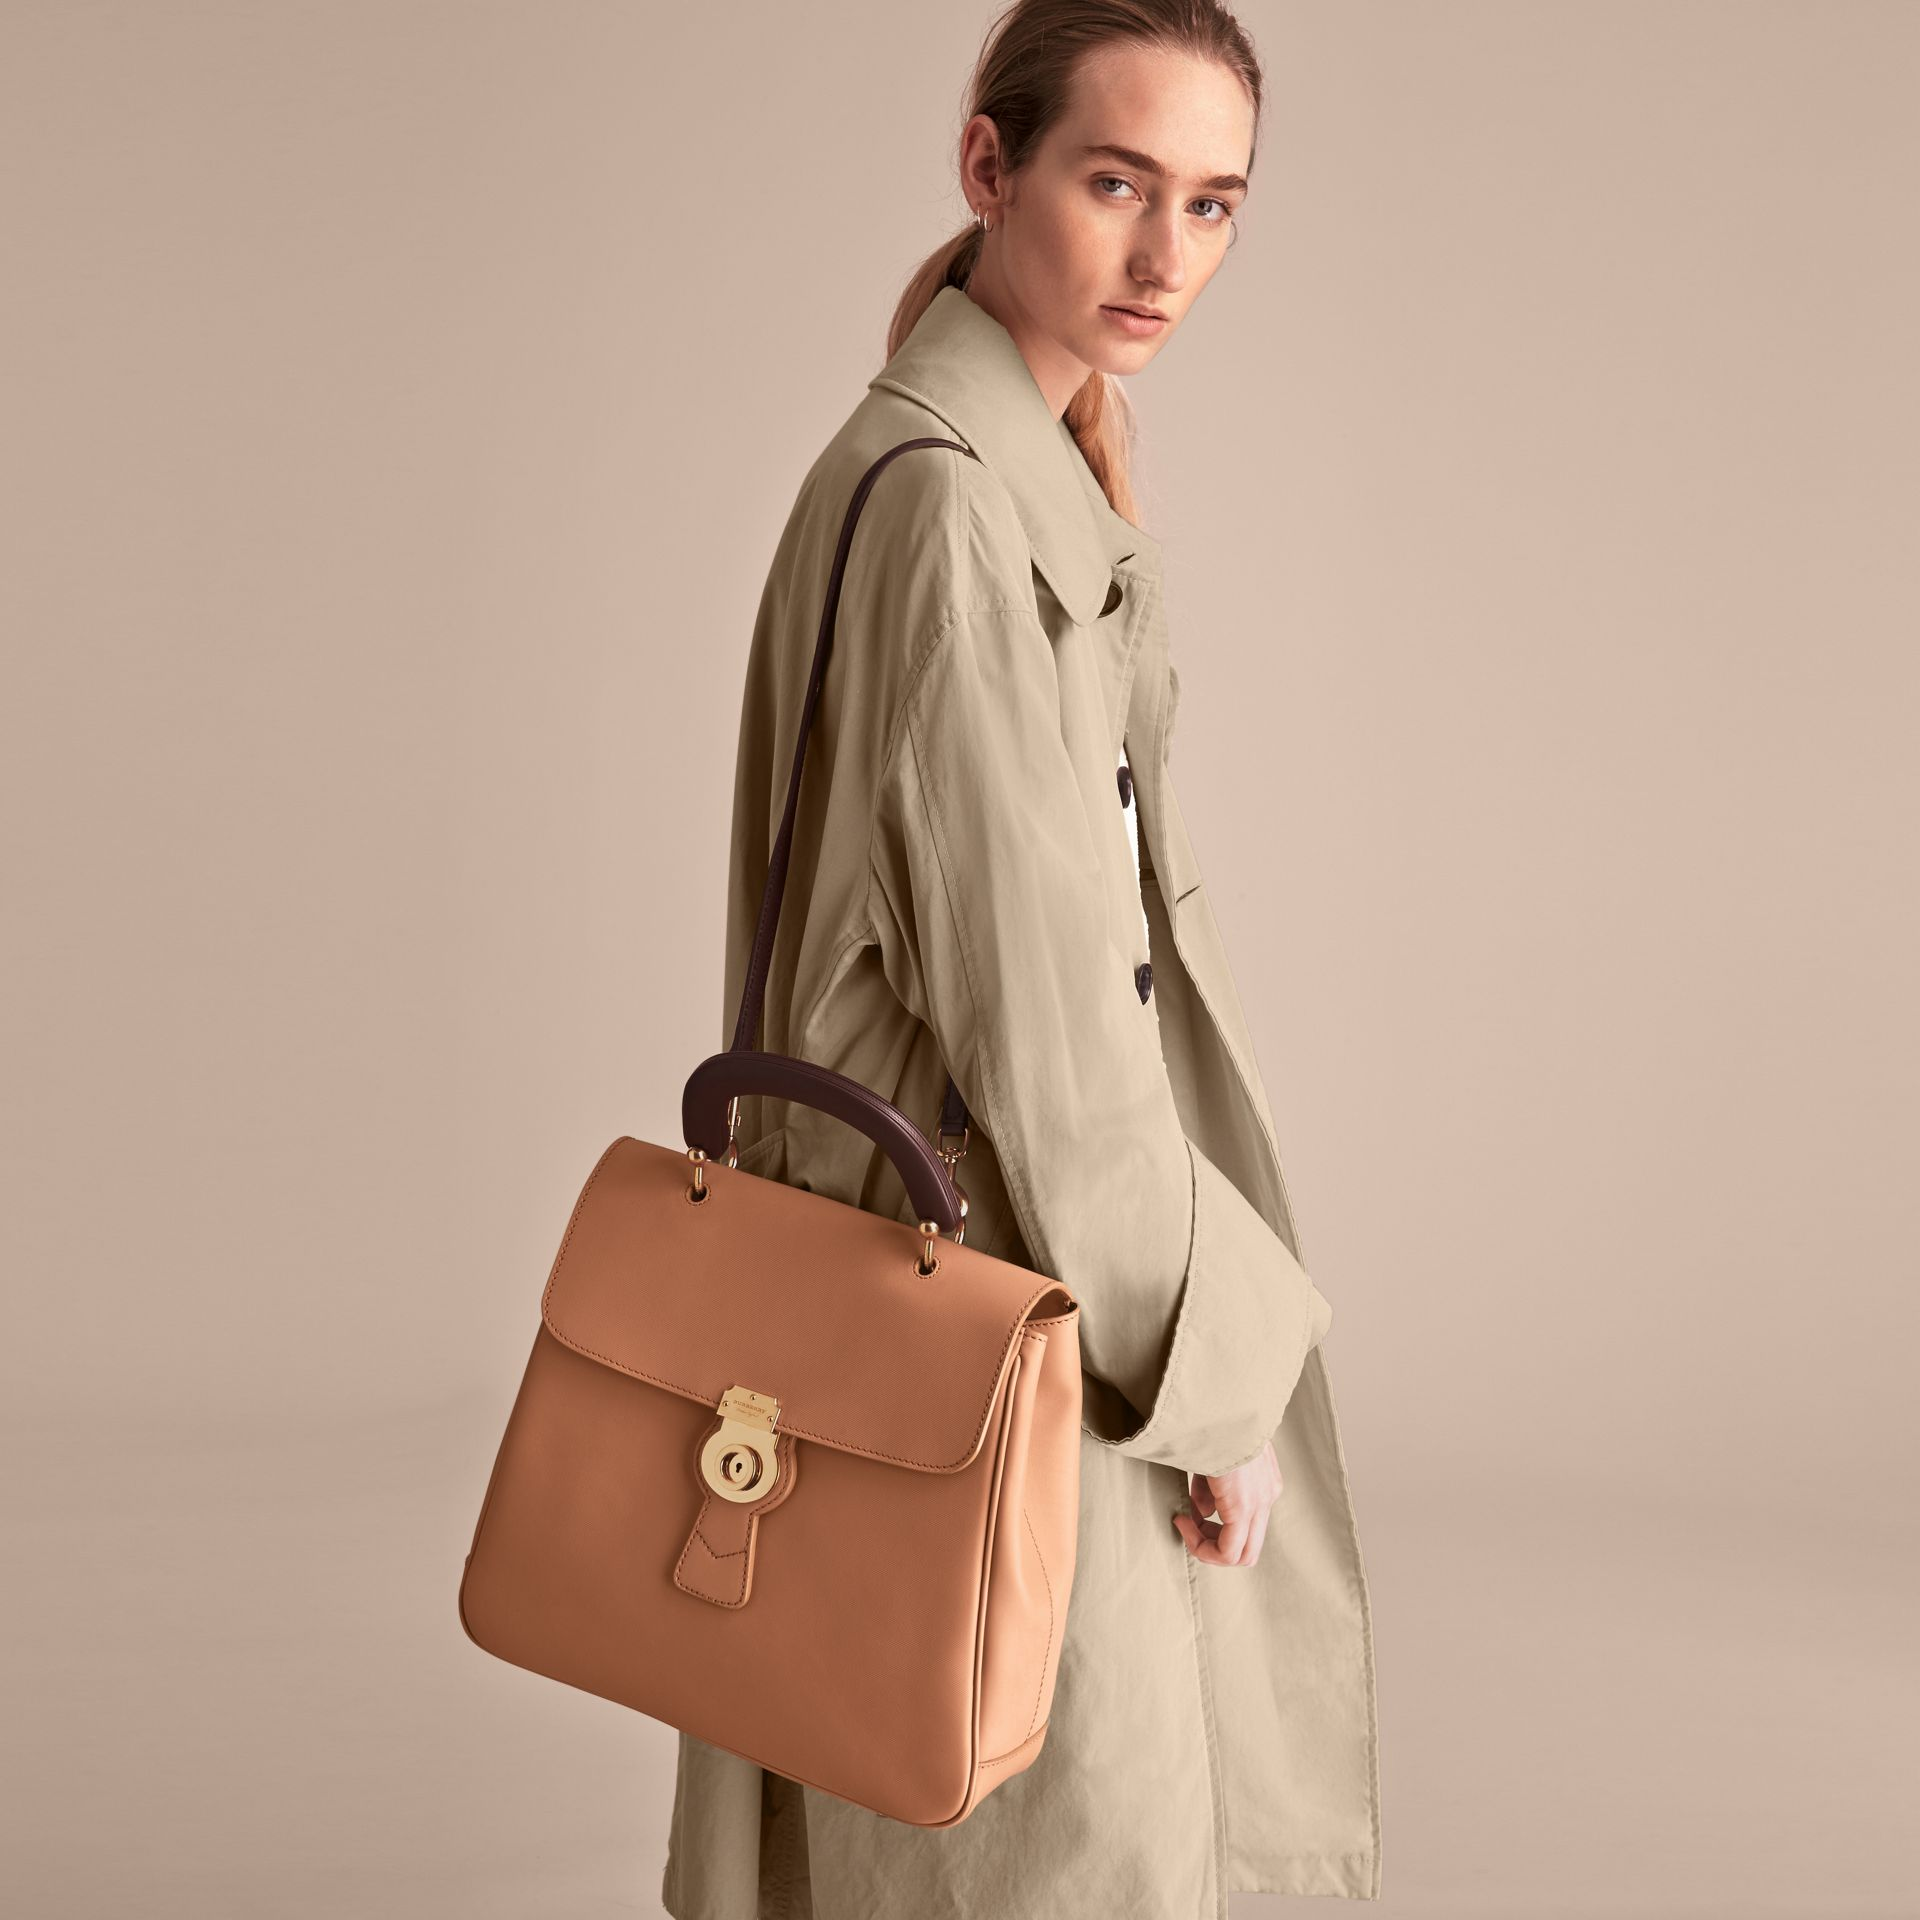 The Large DK88 Top Handle Bag in Pale Clementine - Women | Burberry Australia - gallery image 8